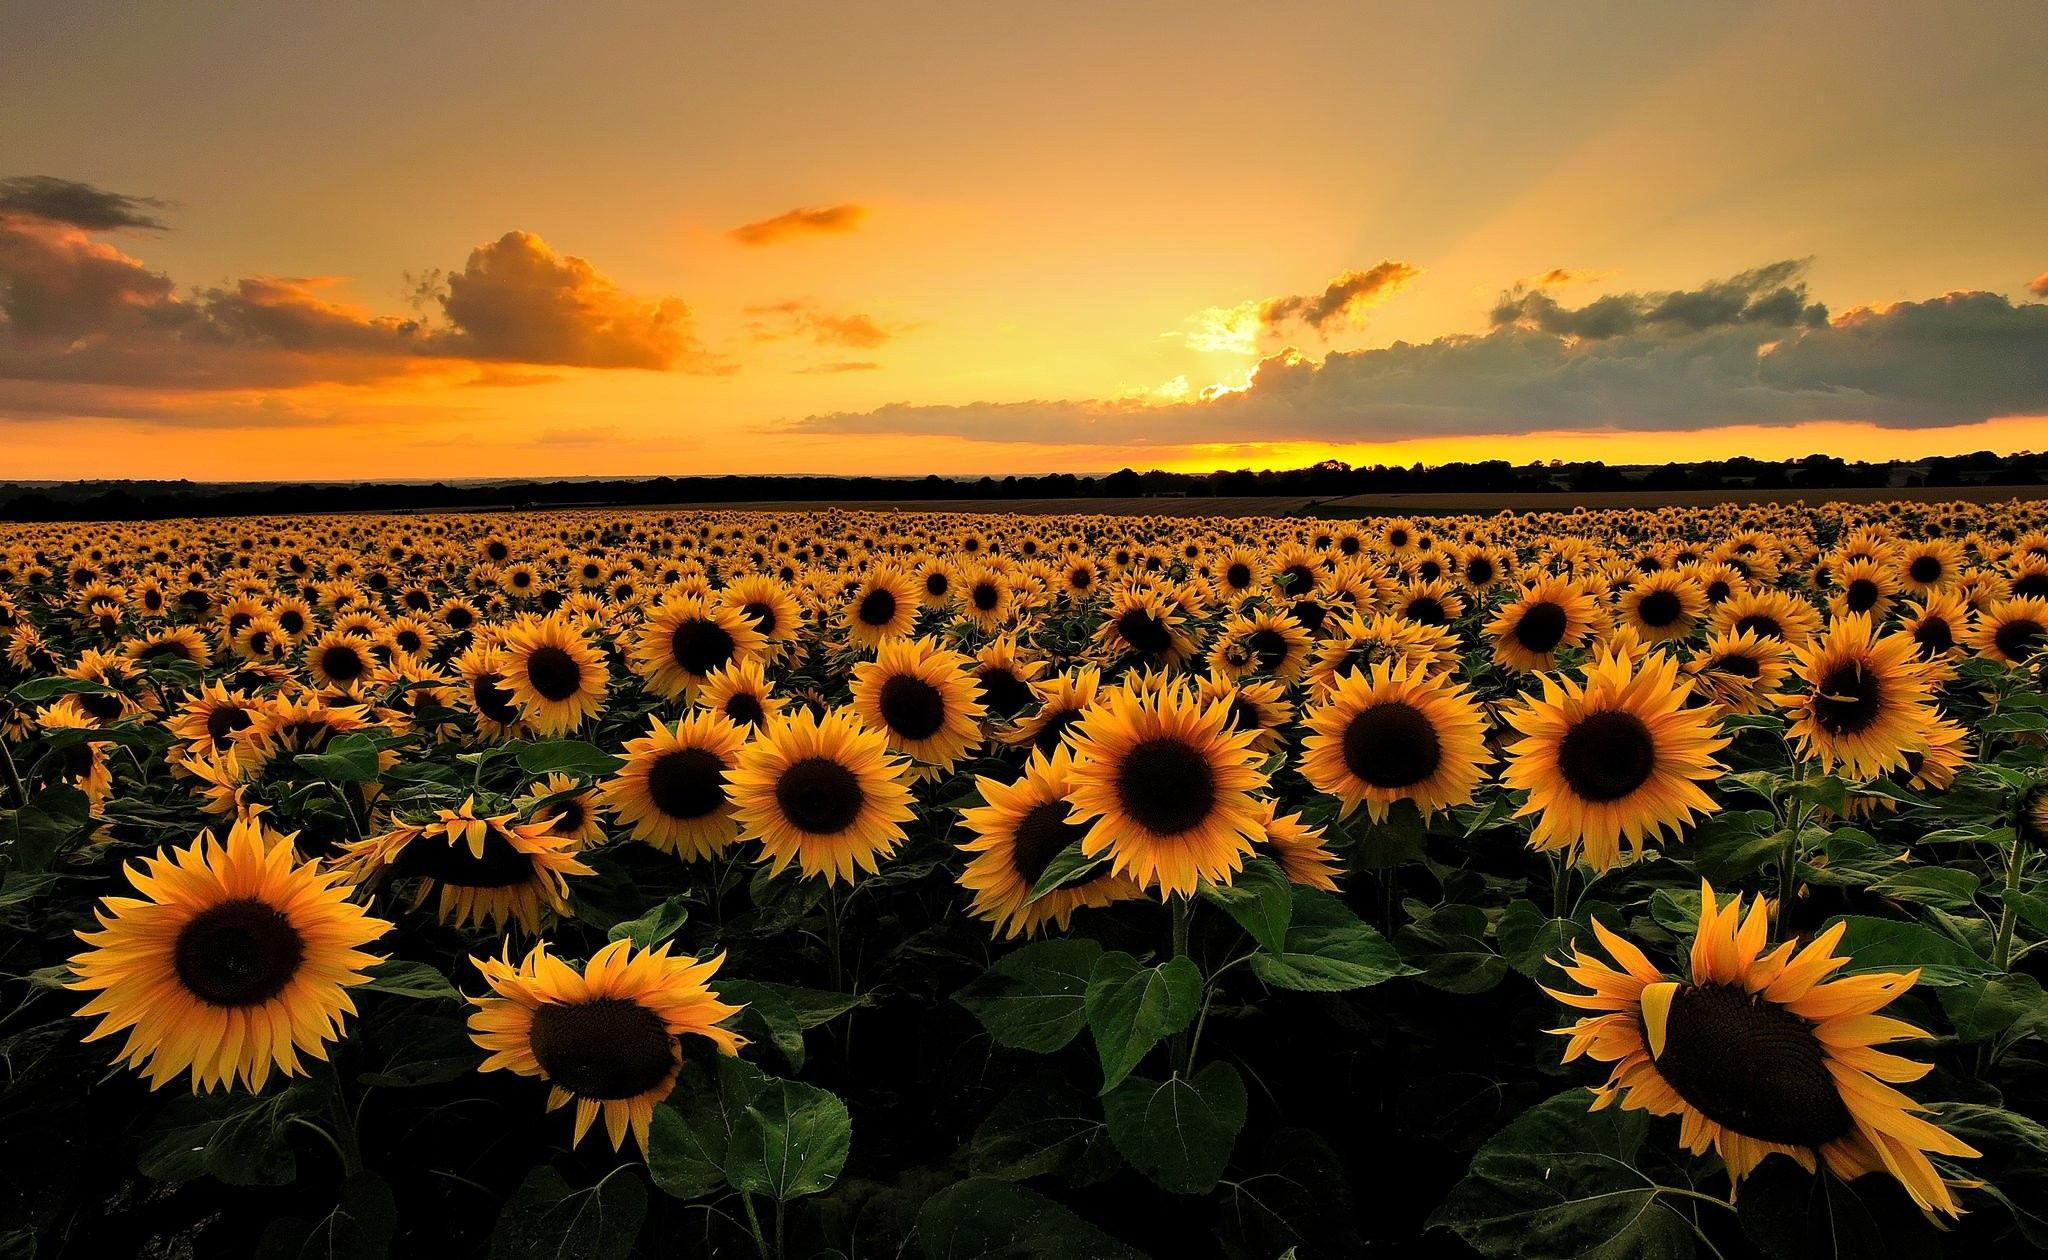 Sunflower Desktop Wallpapers   Top Sunflower Desktop 2048x1260